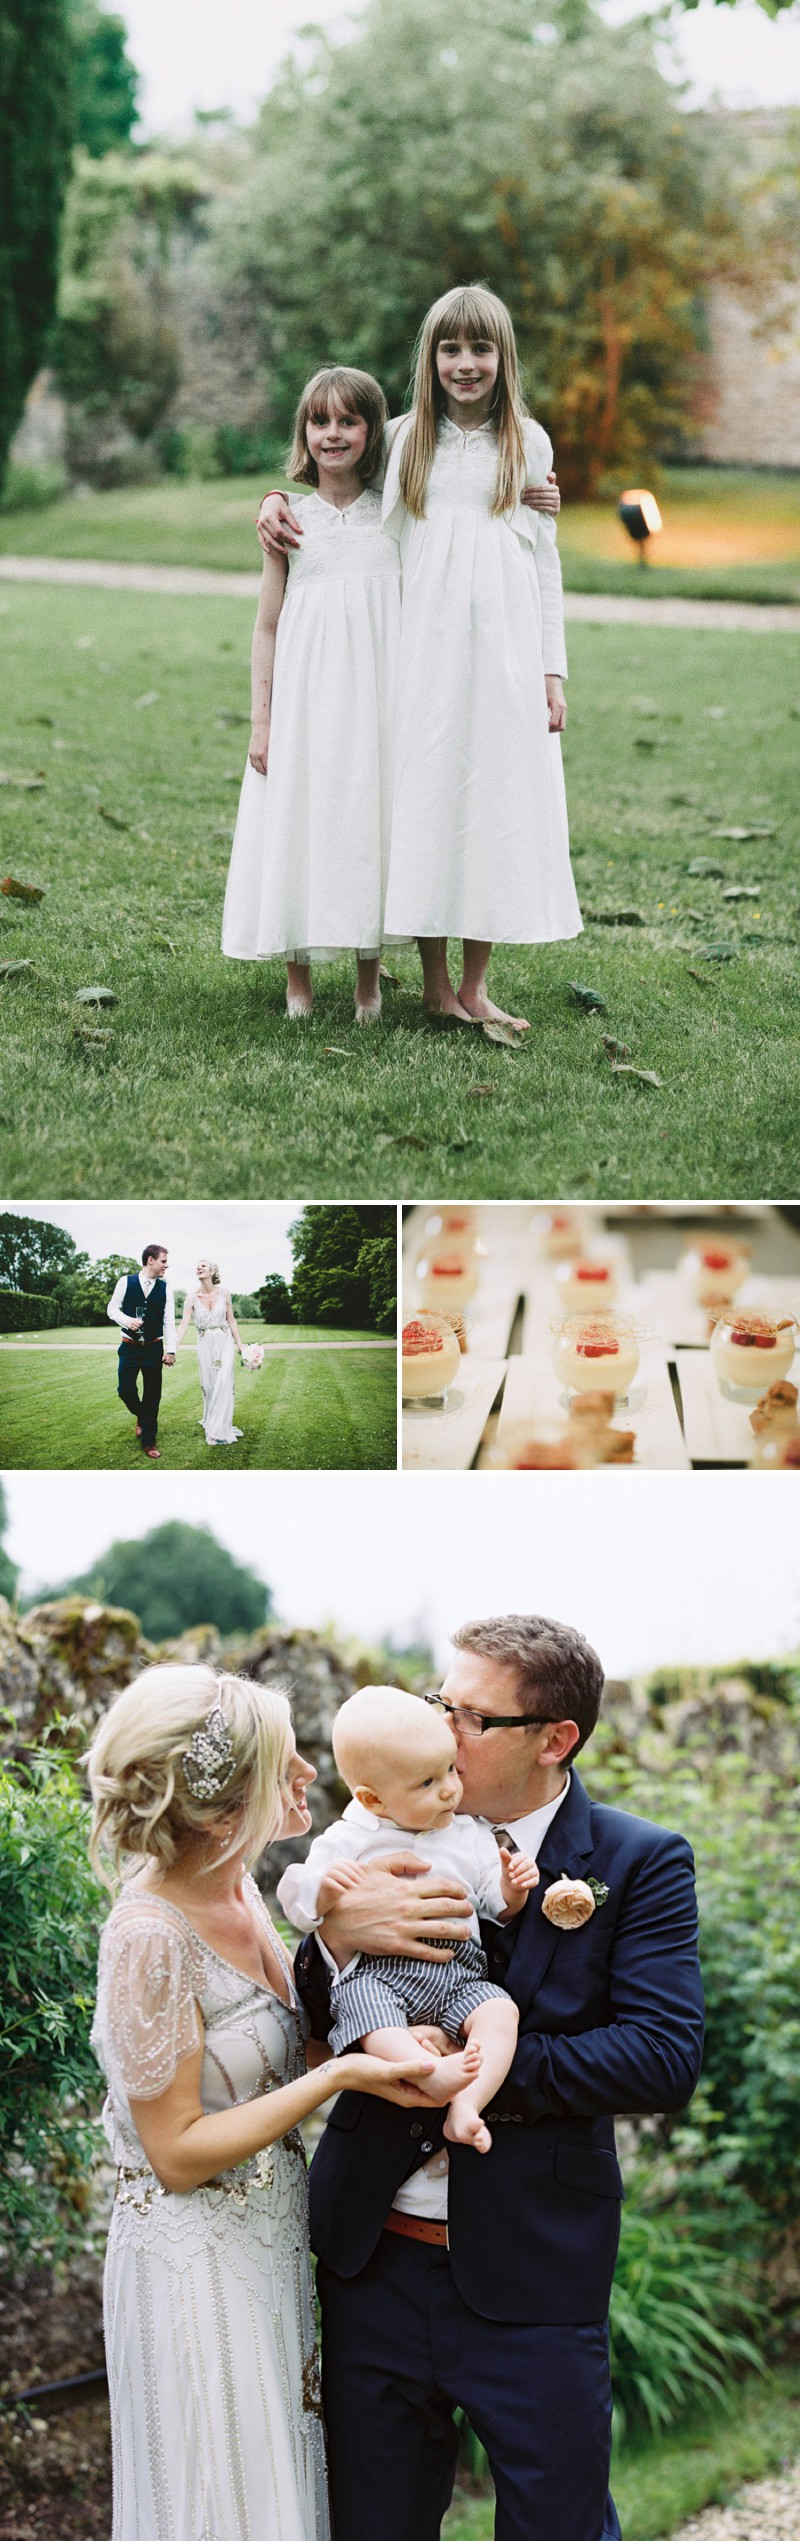 An English Country Garden And Art Deco Themed Wedding With A Jenny Packham Eden Dress At Notley Abbey And A Peony Bouquet._18